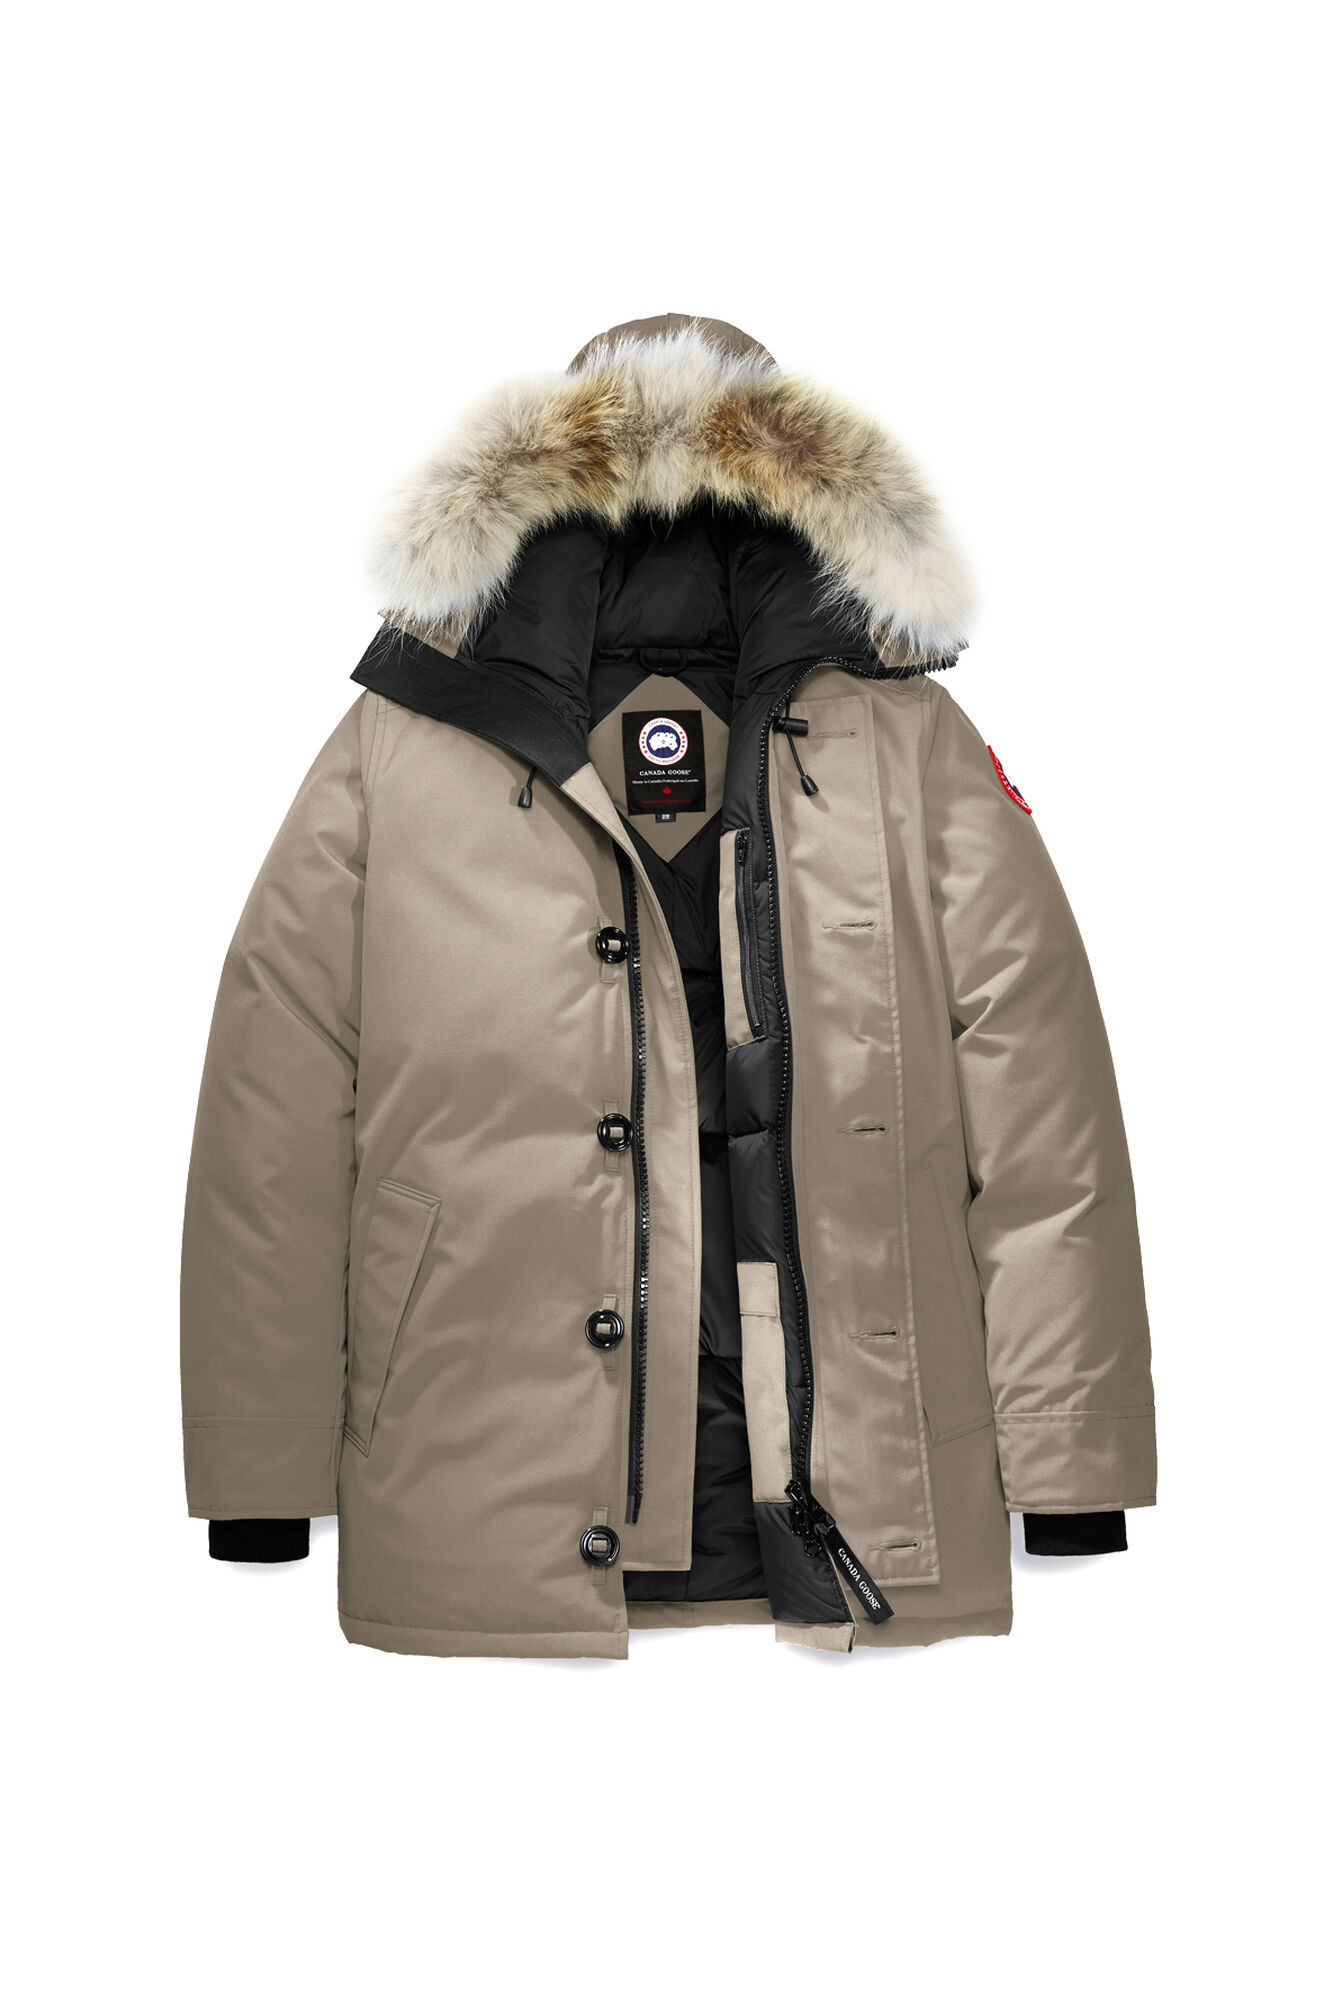 Canada Goose down online shop - Men's Arctic Program Chateau Parka | Canada Goose?